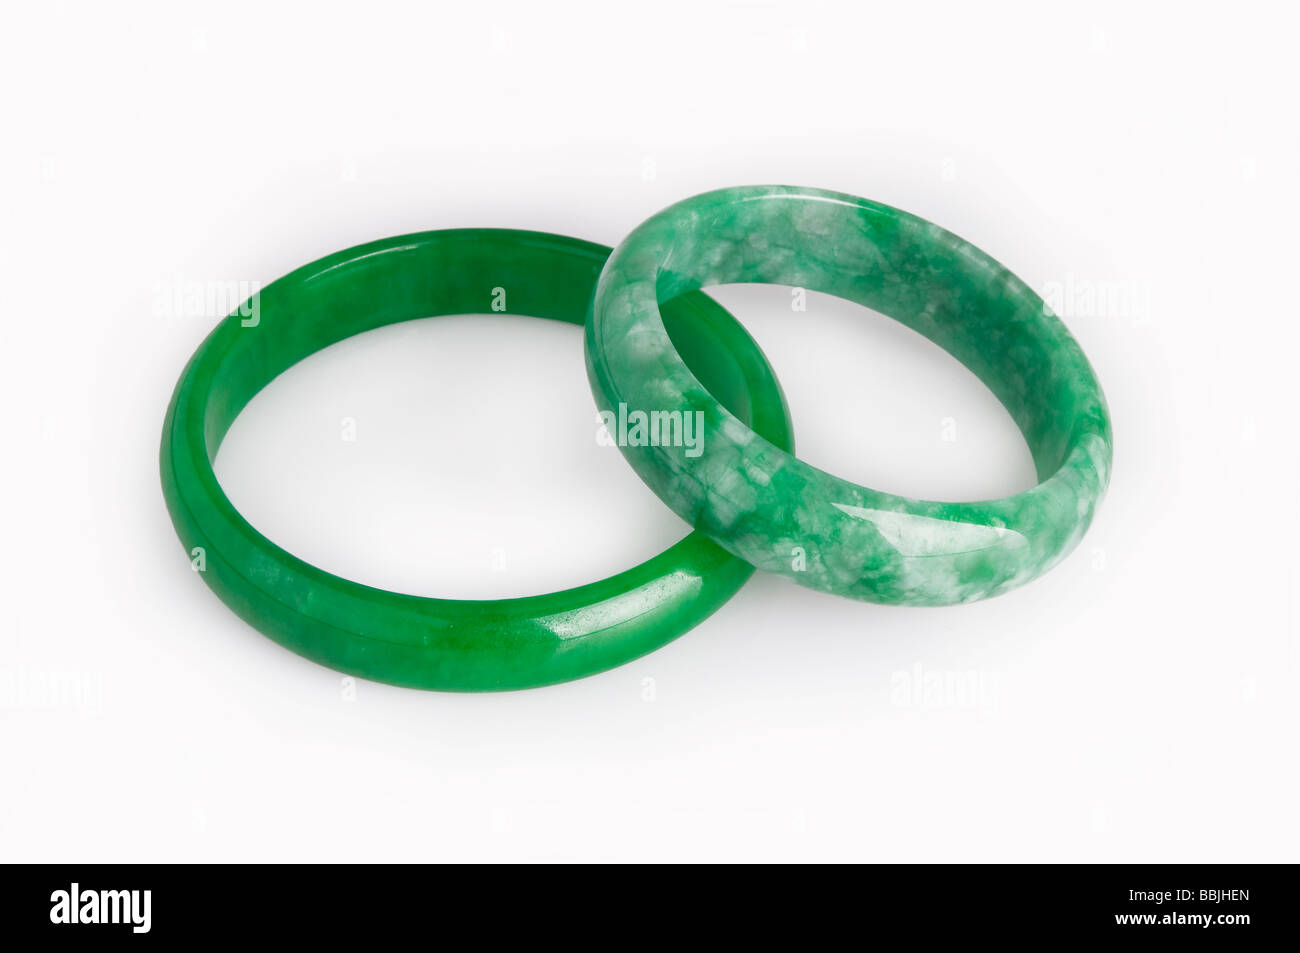 Imperial Jade, 'jadeite' bangles on white background - Stock Image